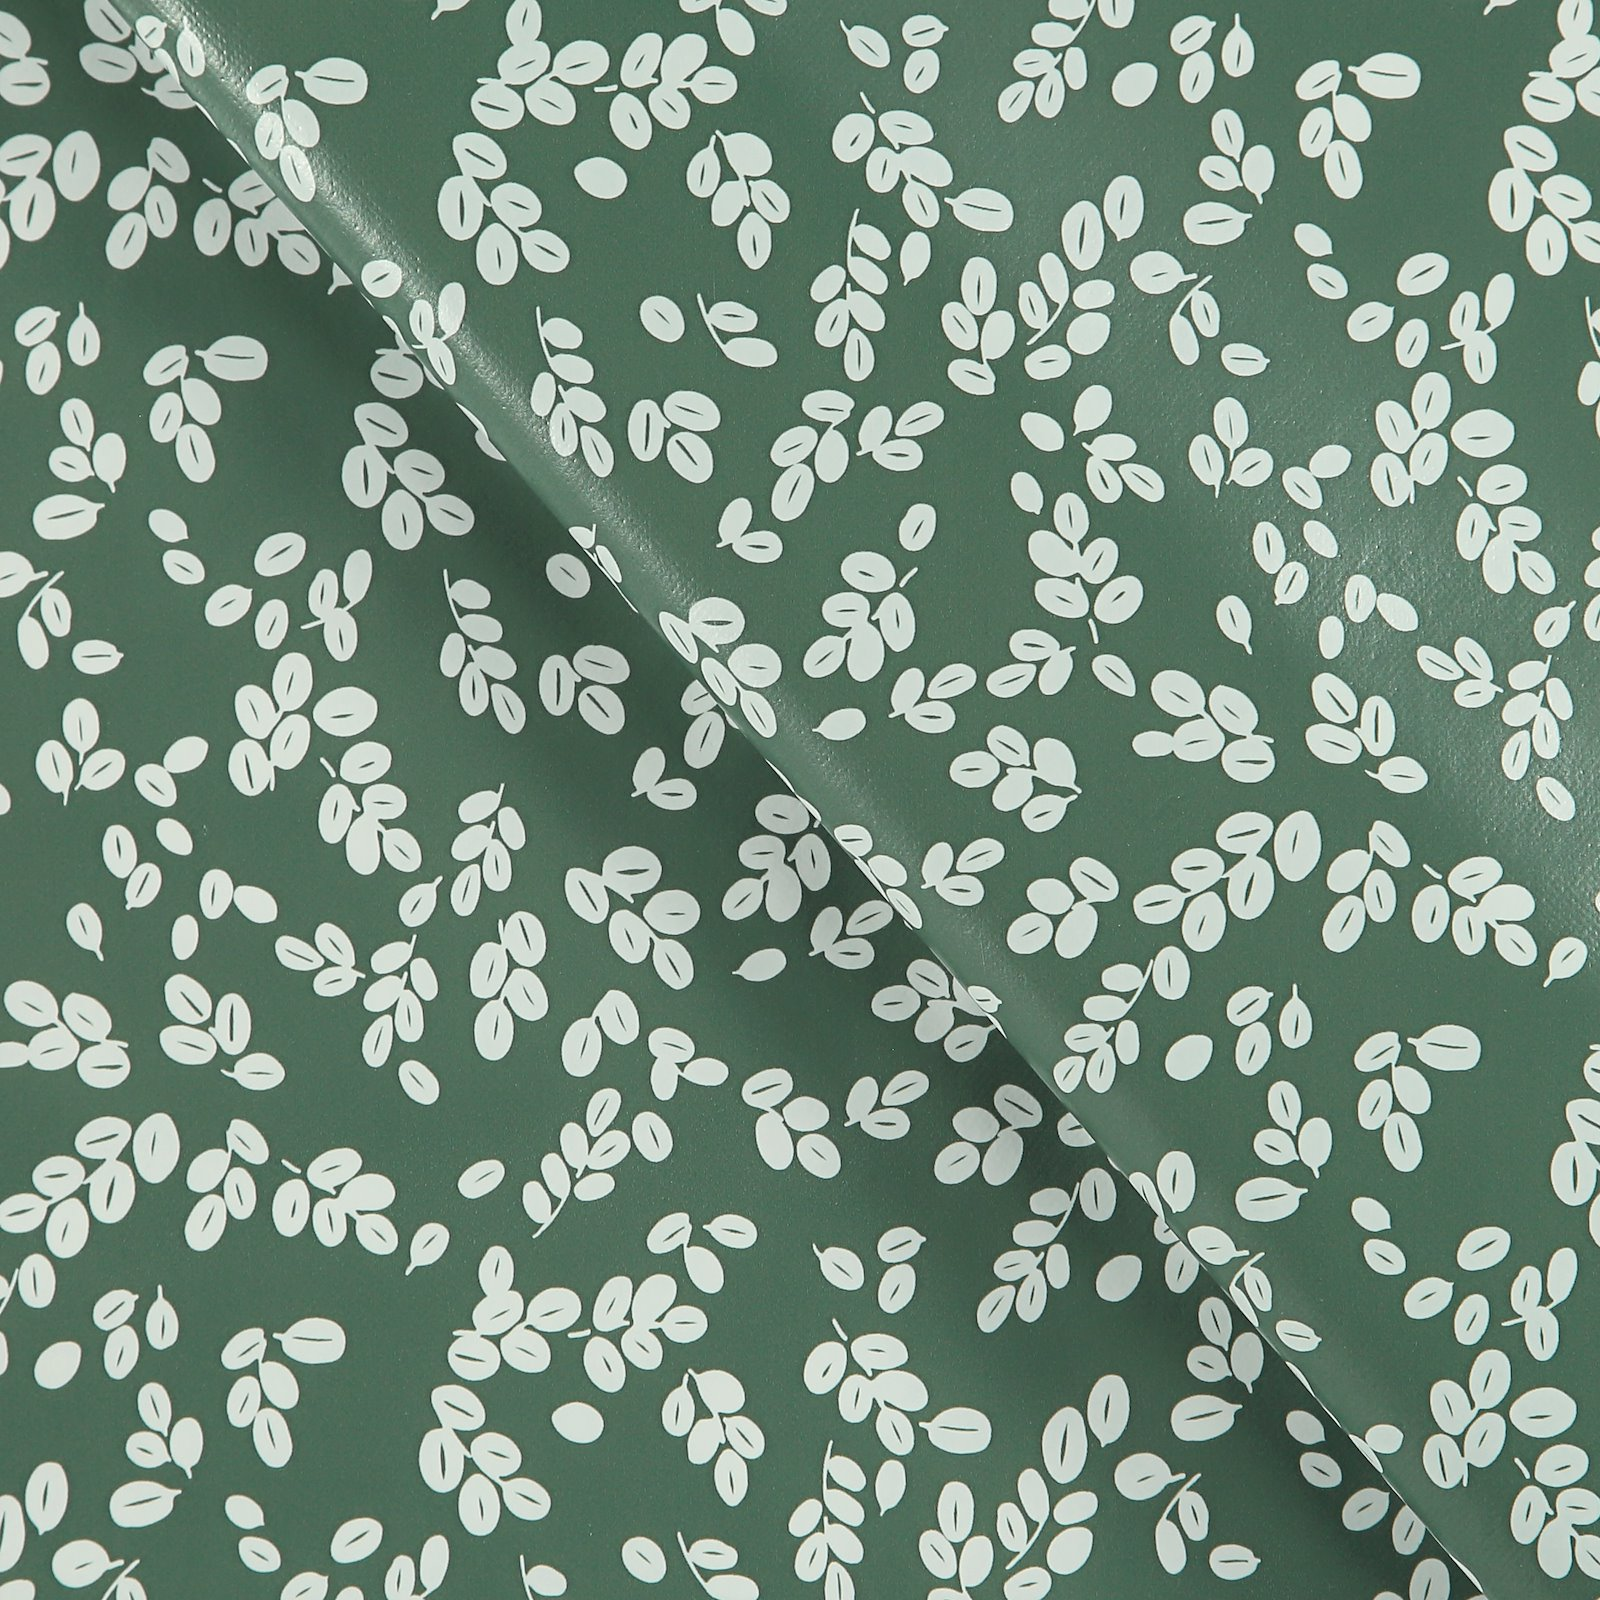 Non-woven oilcloth green w white leaves 866129_pack